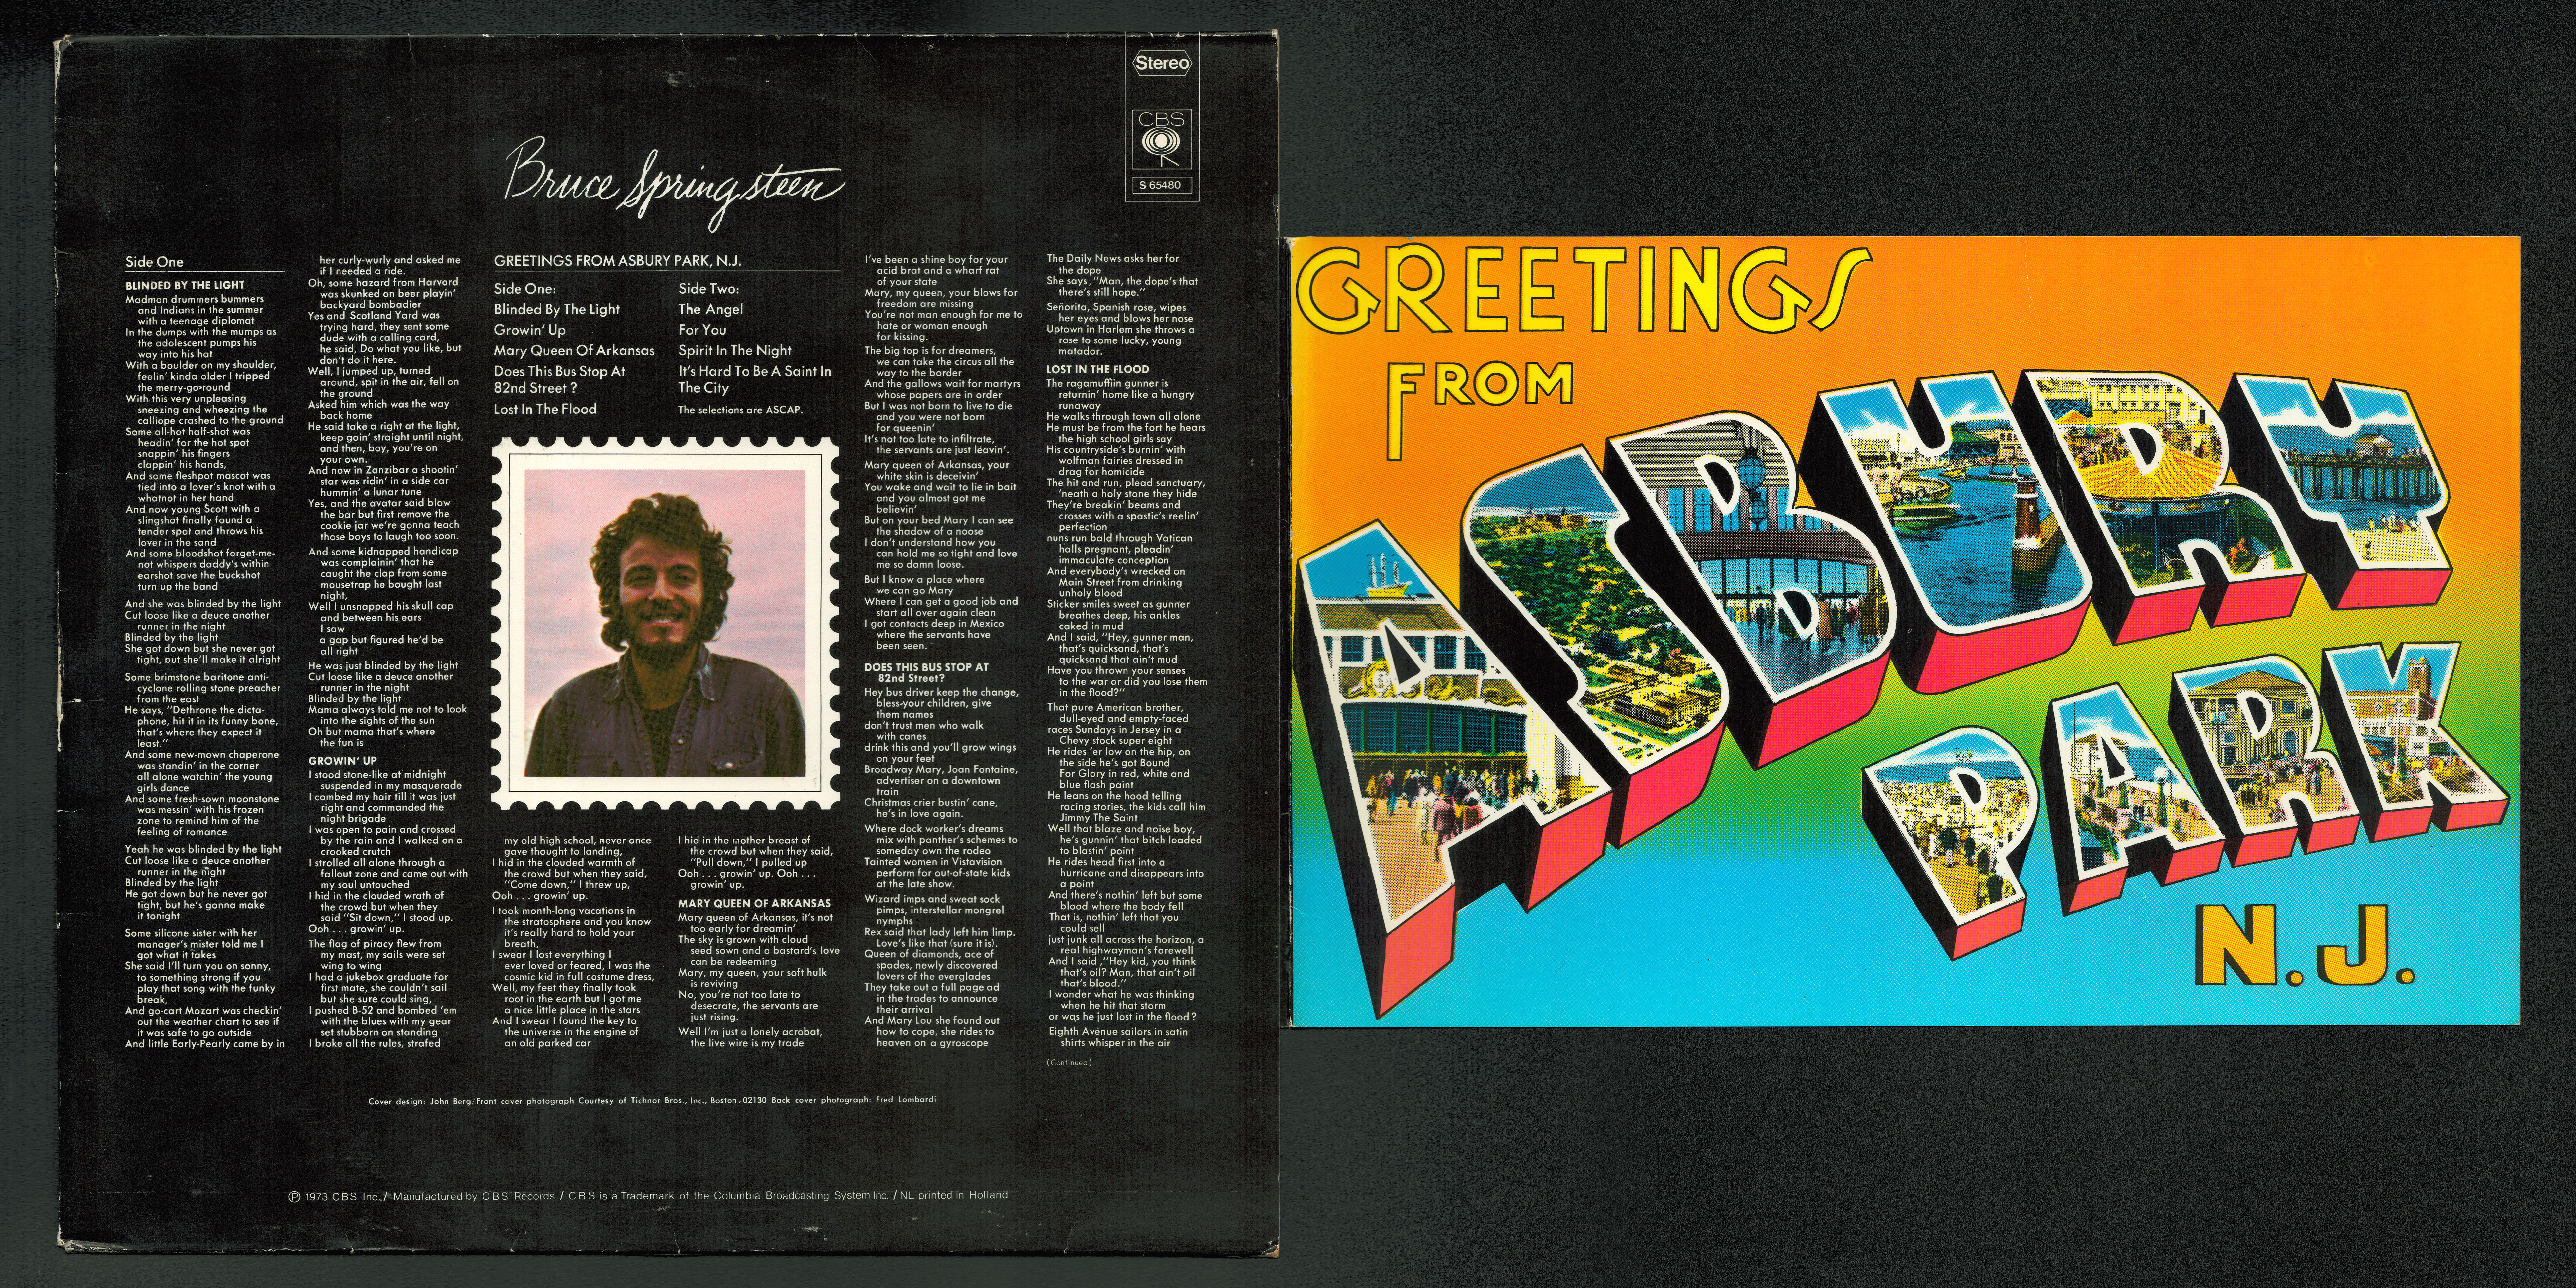 Bruce springsteen collection greetings from asbury park nj pages m4hsunfo